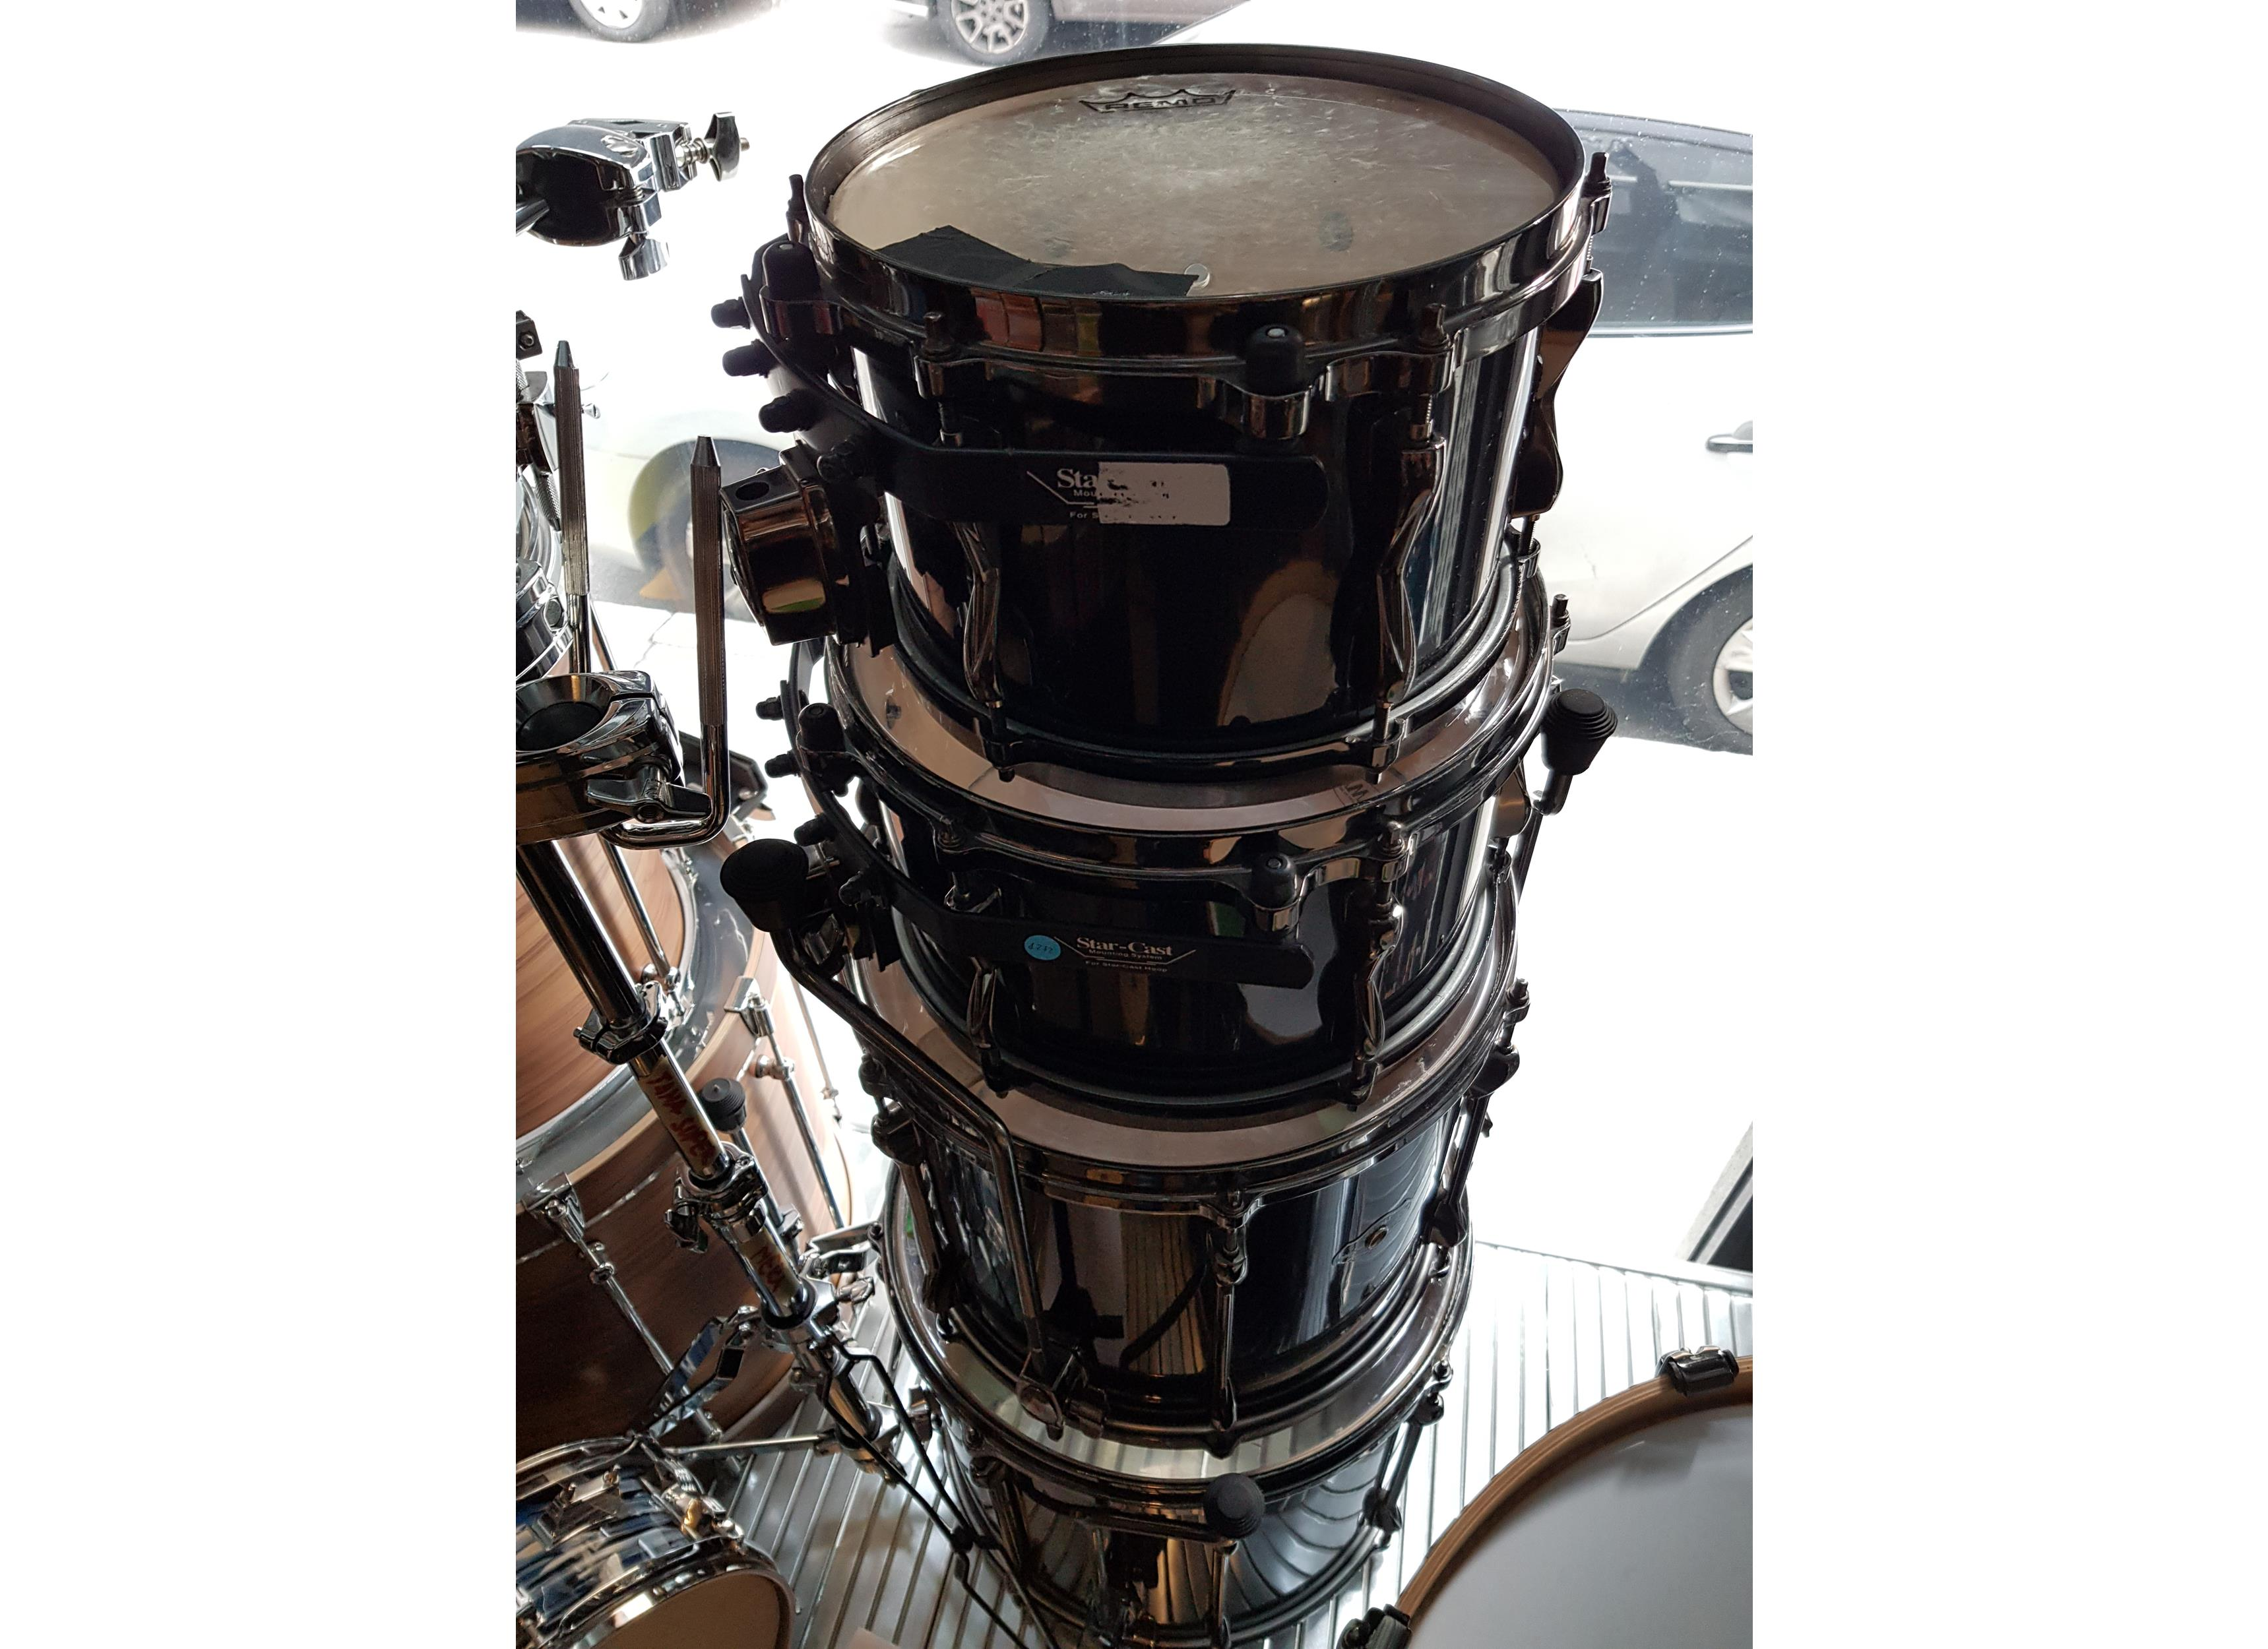 TAMA SUPERSTAR MAPLE HYPER DRIVE SET SK-62 BMB BRUSHED BLACK .. - Batterie / Percussioni Batterie - Batterie Acustiche (set)